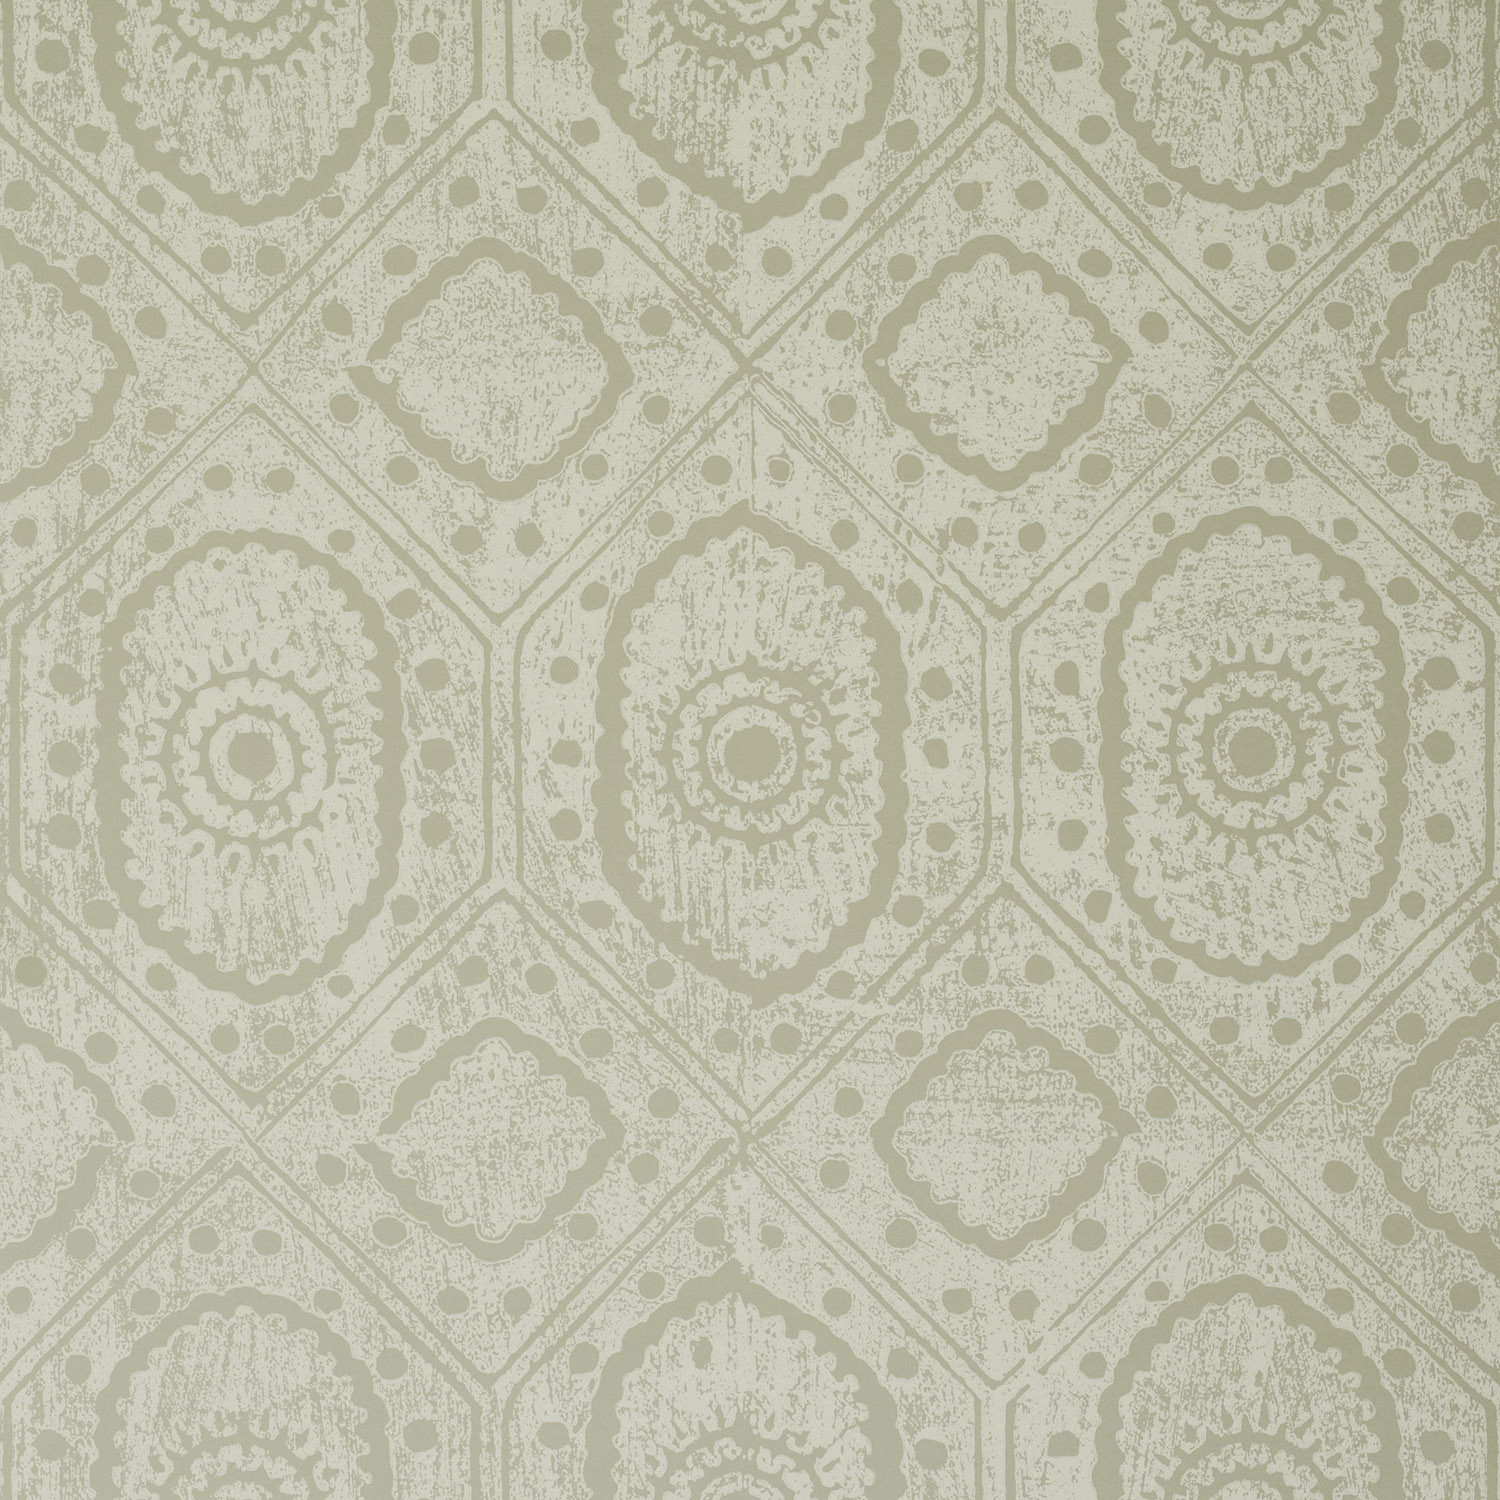 <p><strong>DIAMOND</strong>french grey 900-05<a href=/the-peggy-angus-collection/diamond-french-grey-900-05>More →</a></p>